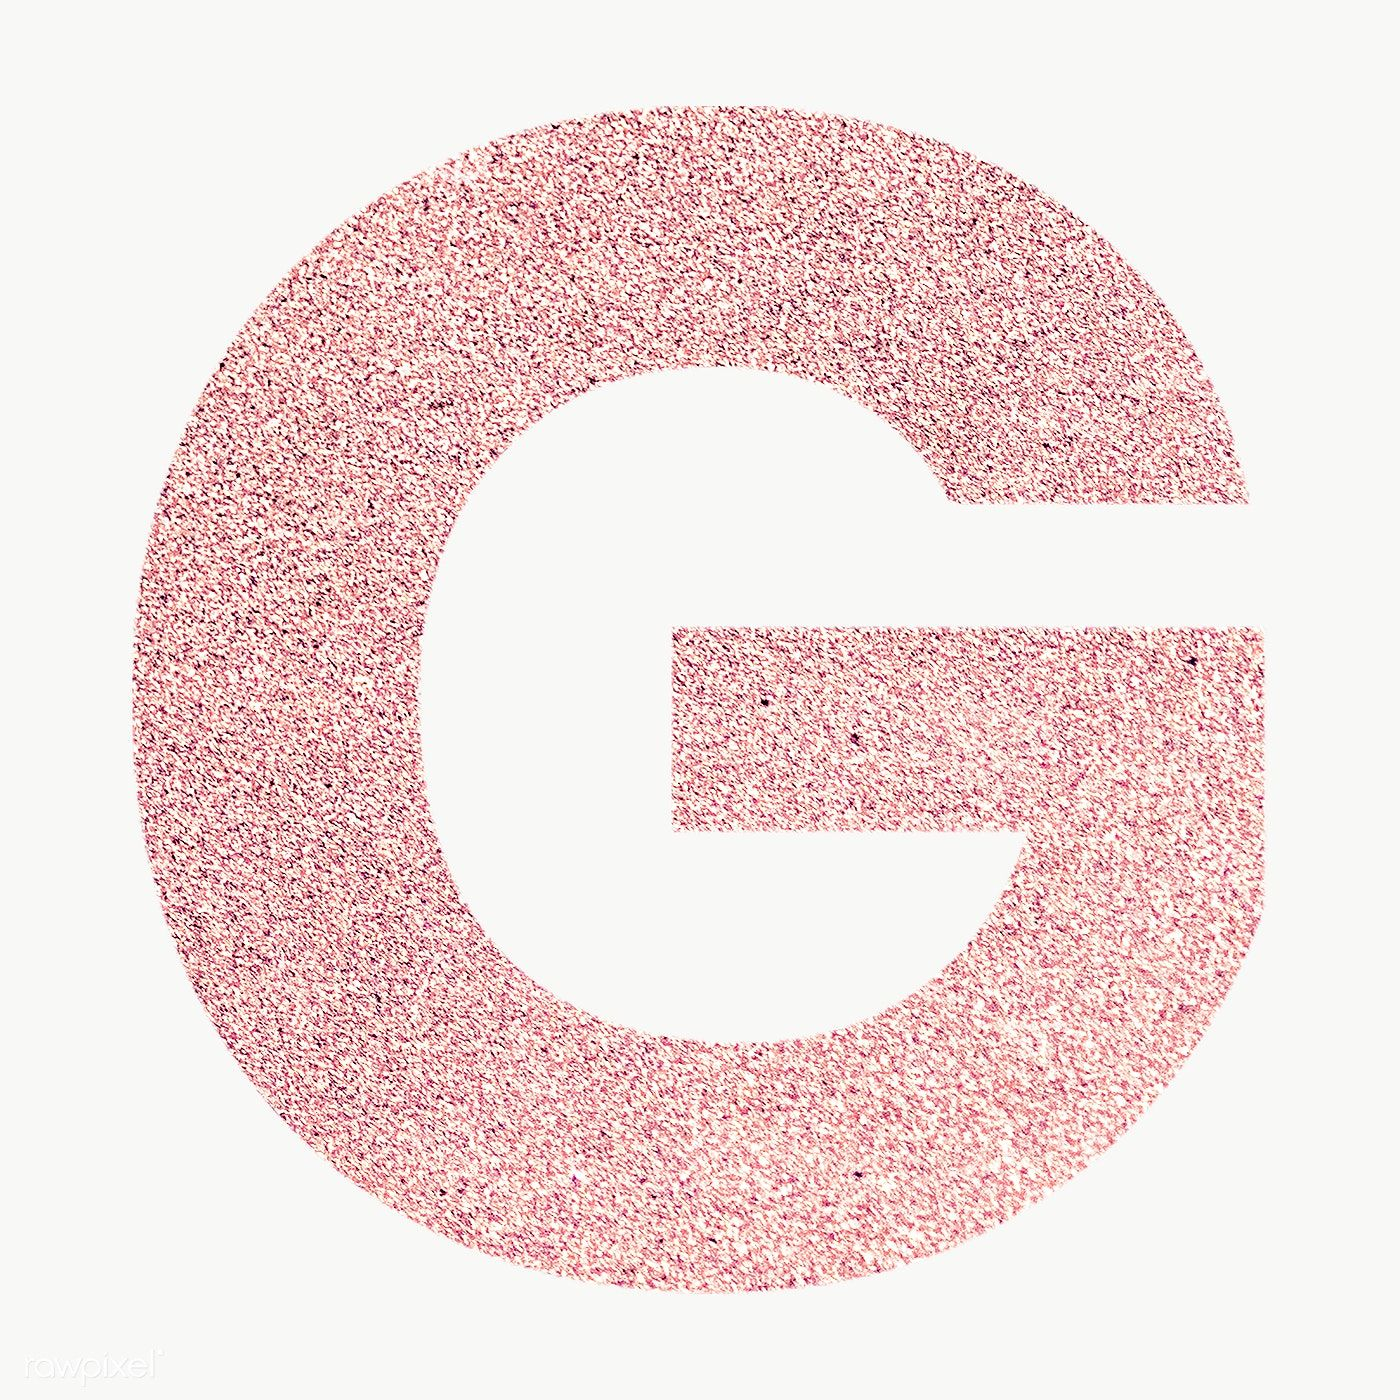 Glitter Capital Letter G Sticker Transparent Png Free Image By Rawpixel Com Ningzk V In 2020 Pink Wallpaper Iphone Iphone Wallpaper Glitter Transparent Stickers